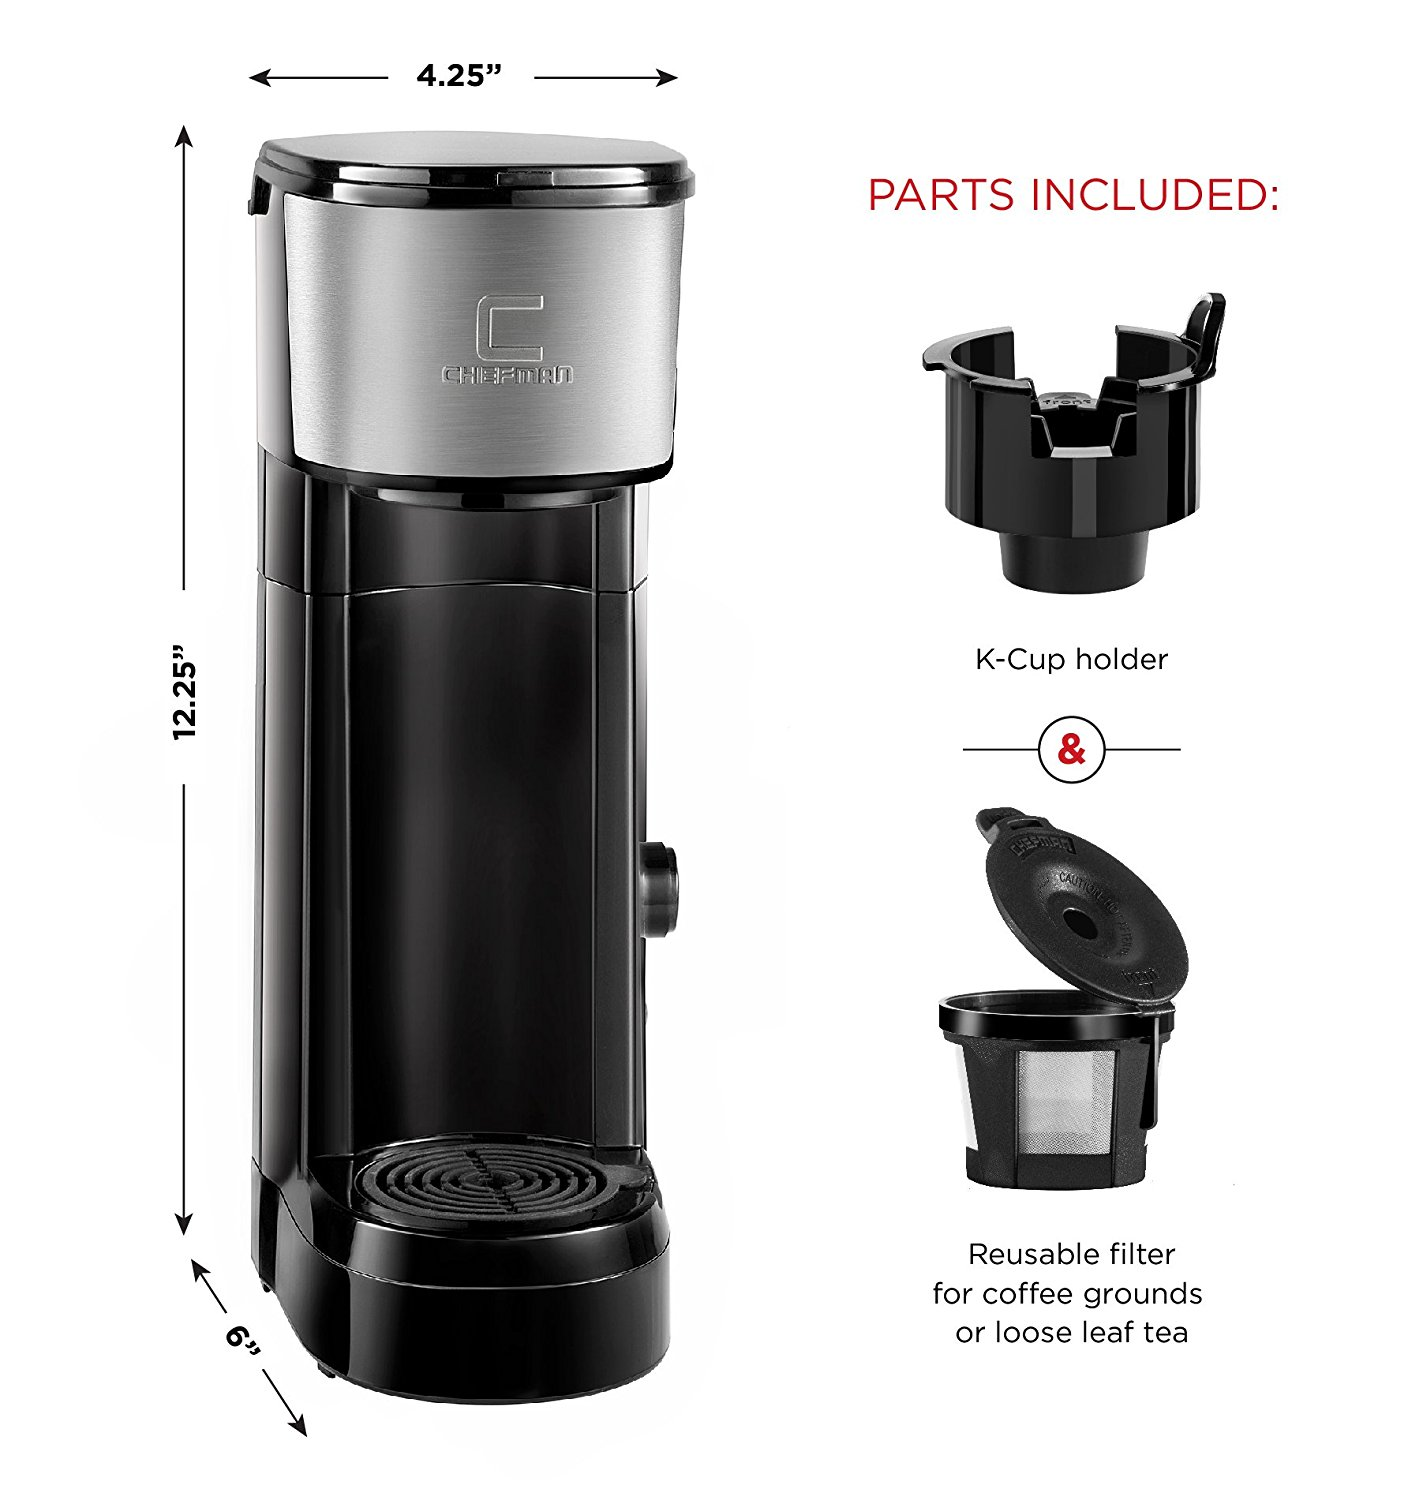 Chefman Pod Coffee Maker K-Cup InstaBrew Brewer Best Price - Chefman Pod Coffee Maker K-Cup ...